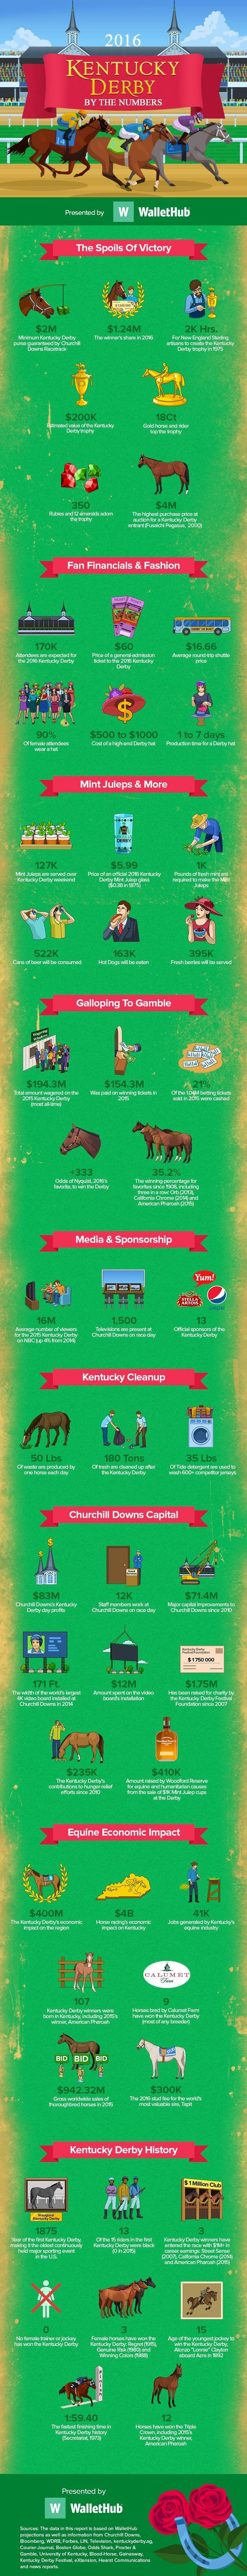 Mint Juleps, Fancy Hats and Lots of Trash: The Kentucky Derby by the Numbers…